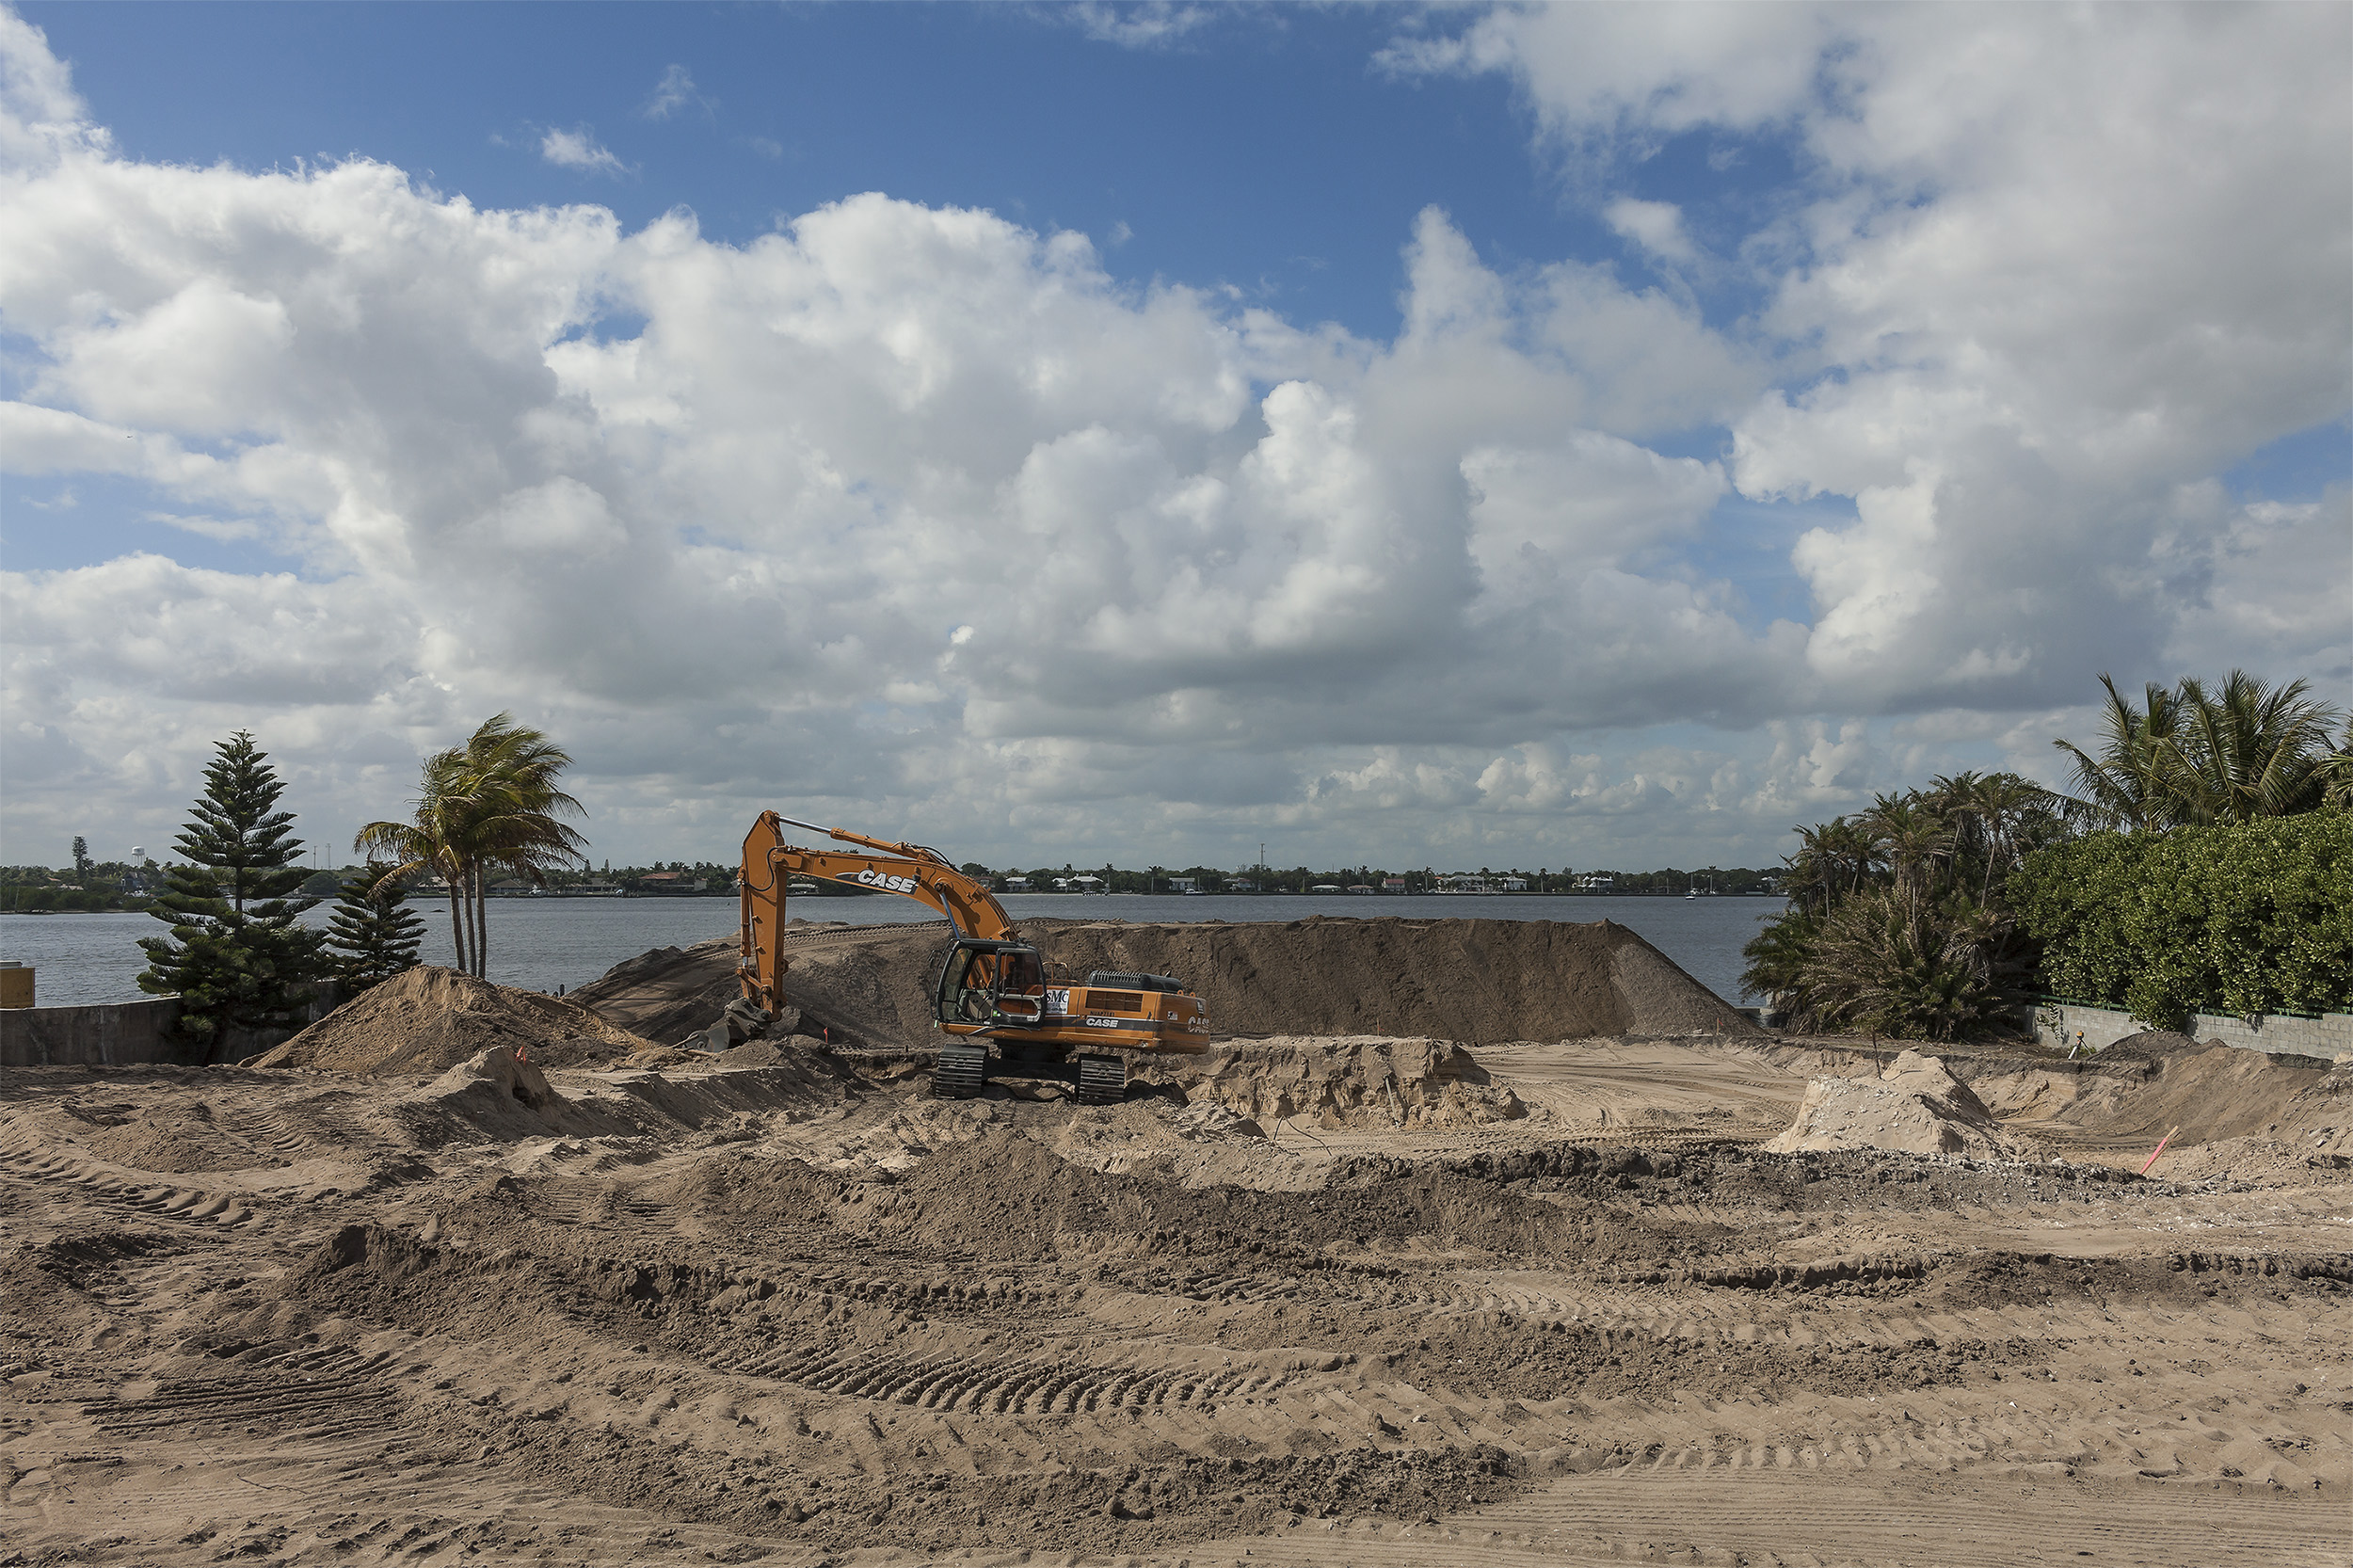 12. Construction Site for a New Mansion, Palm Beach, FL